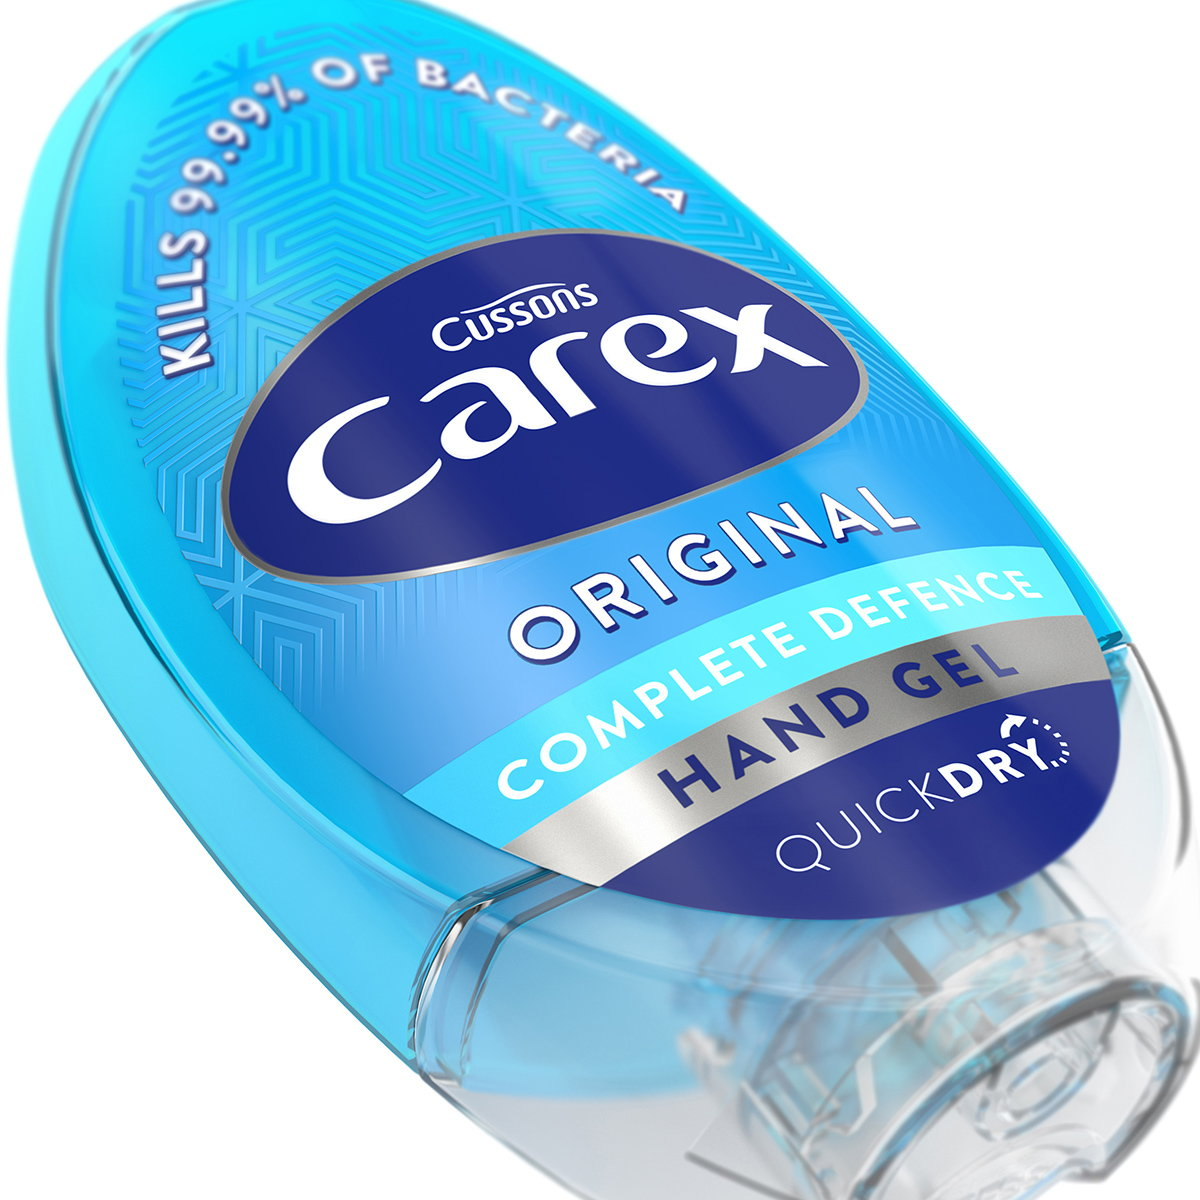 Carex Relaunches Its Antibacterial Hand-gel Range with Iconic Design by PB Creative